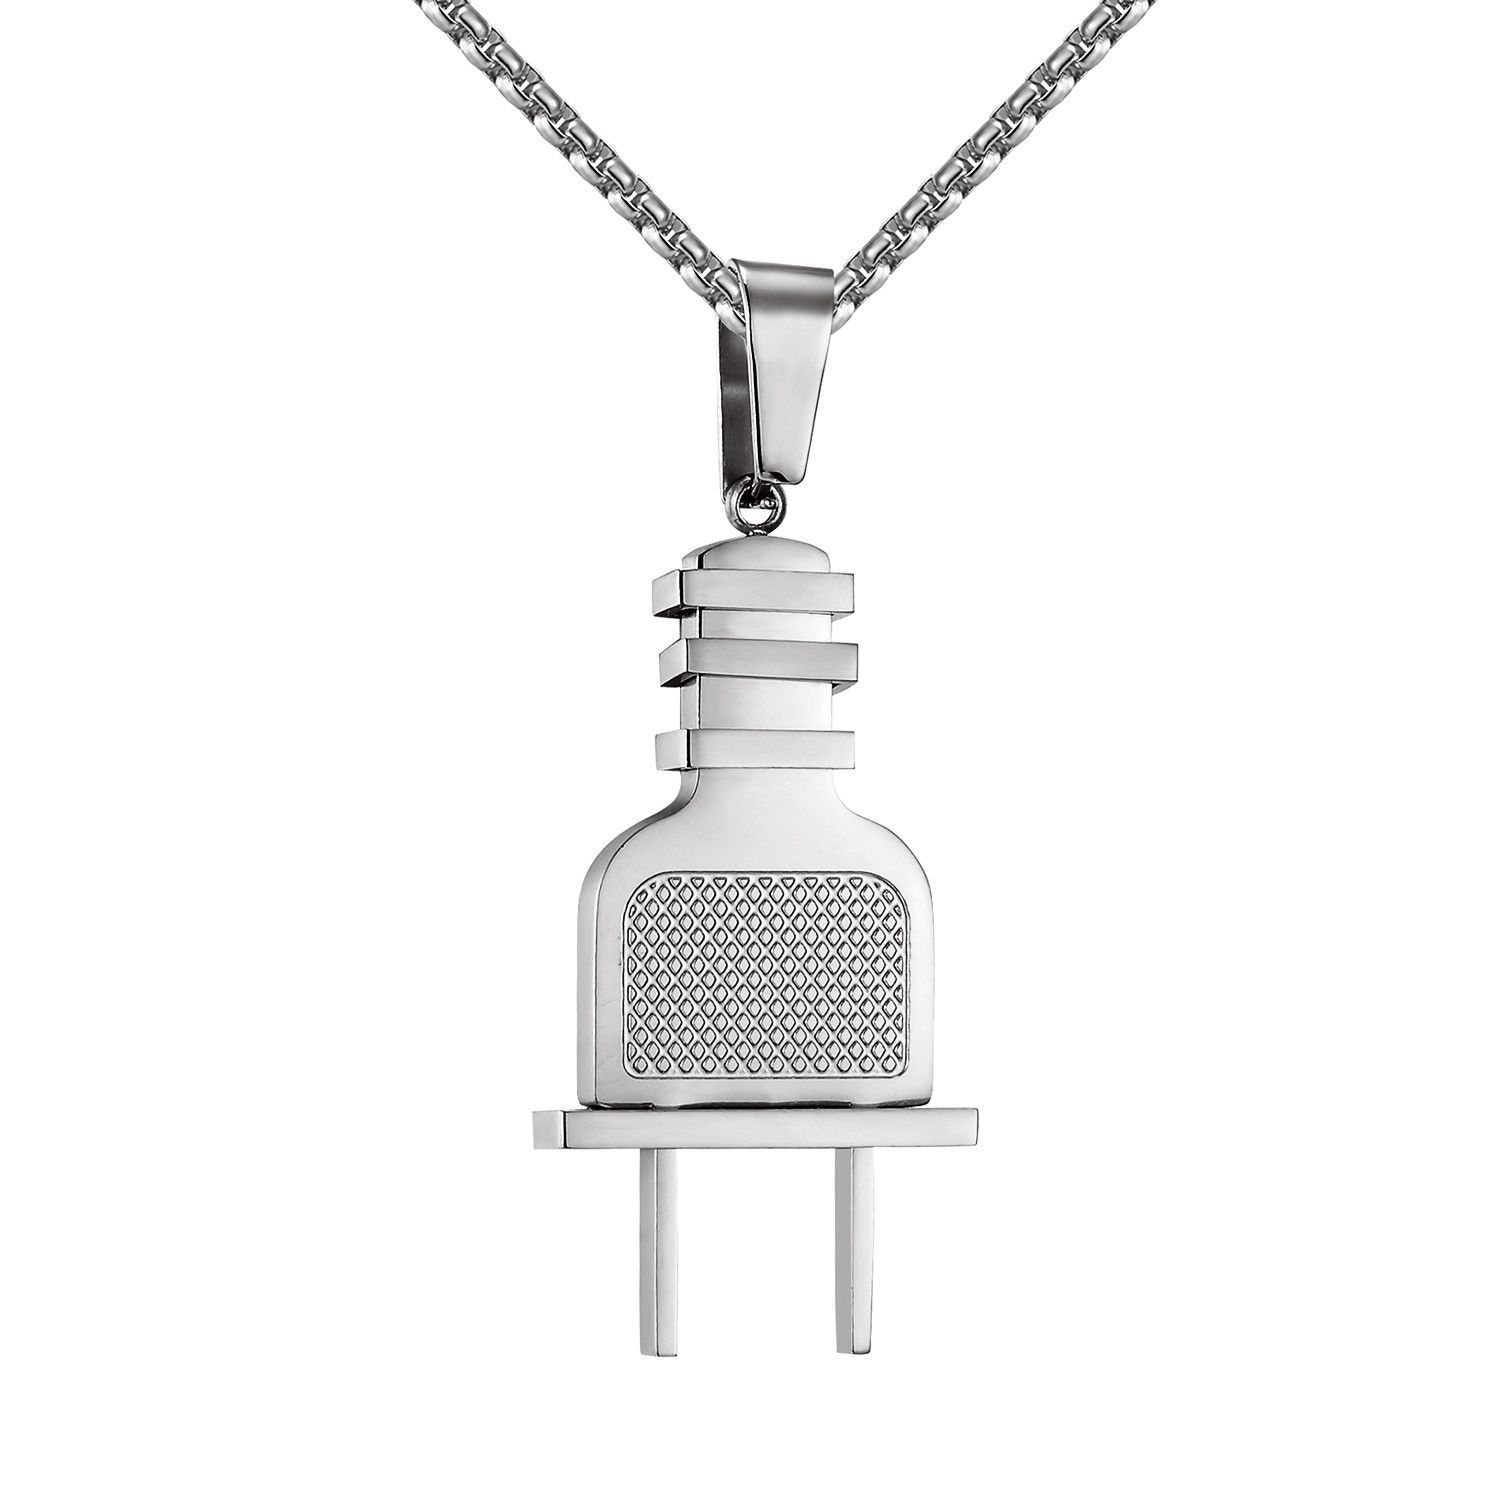 Stainless steel switch plug designer pendant free necklace set men